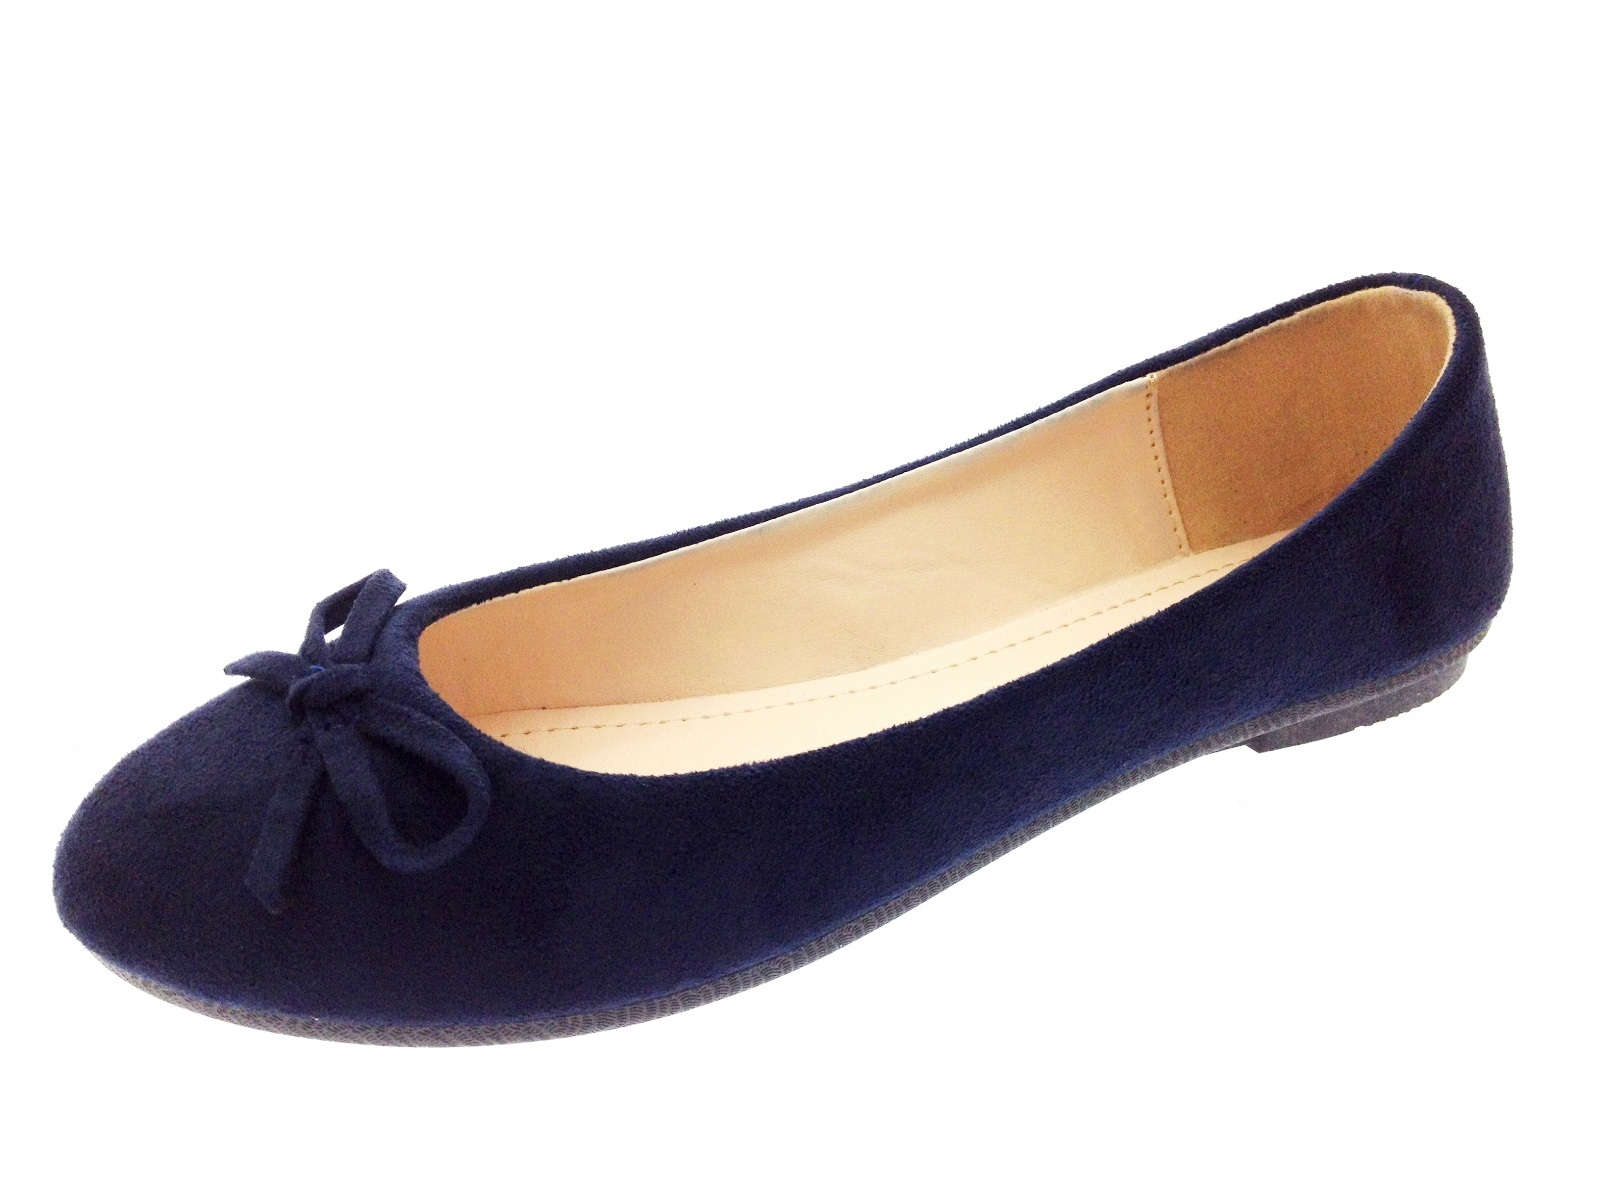 Suede ballet pumps. £ SAVE AS FAVOURITE. Find in Store Not available in stores. Select size. Close. Size Guide. ADD. Find in store. Search Submit Clear. Show map. Search in this area Expand map. Geolocation. Our items sell out quickly - the stock level is .